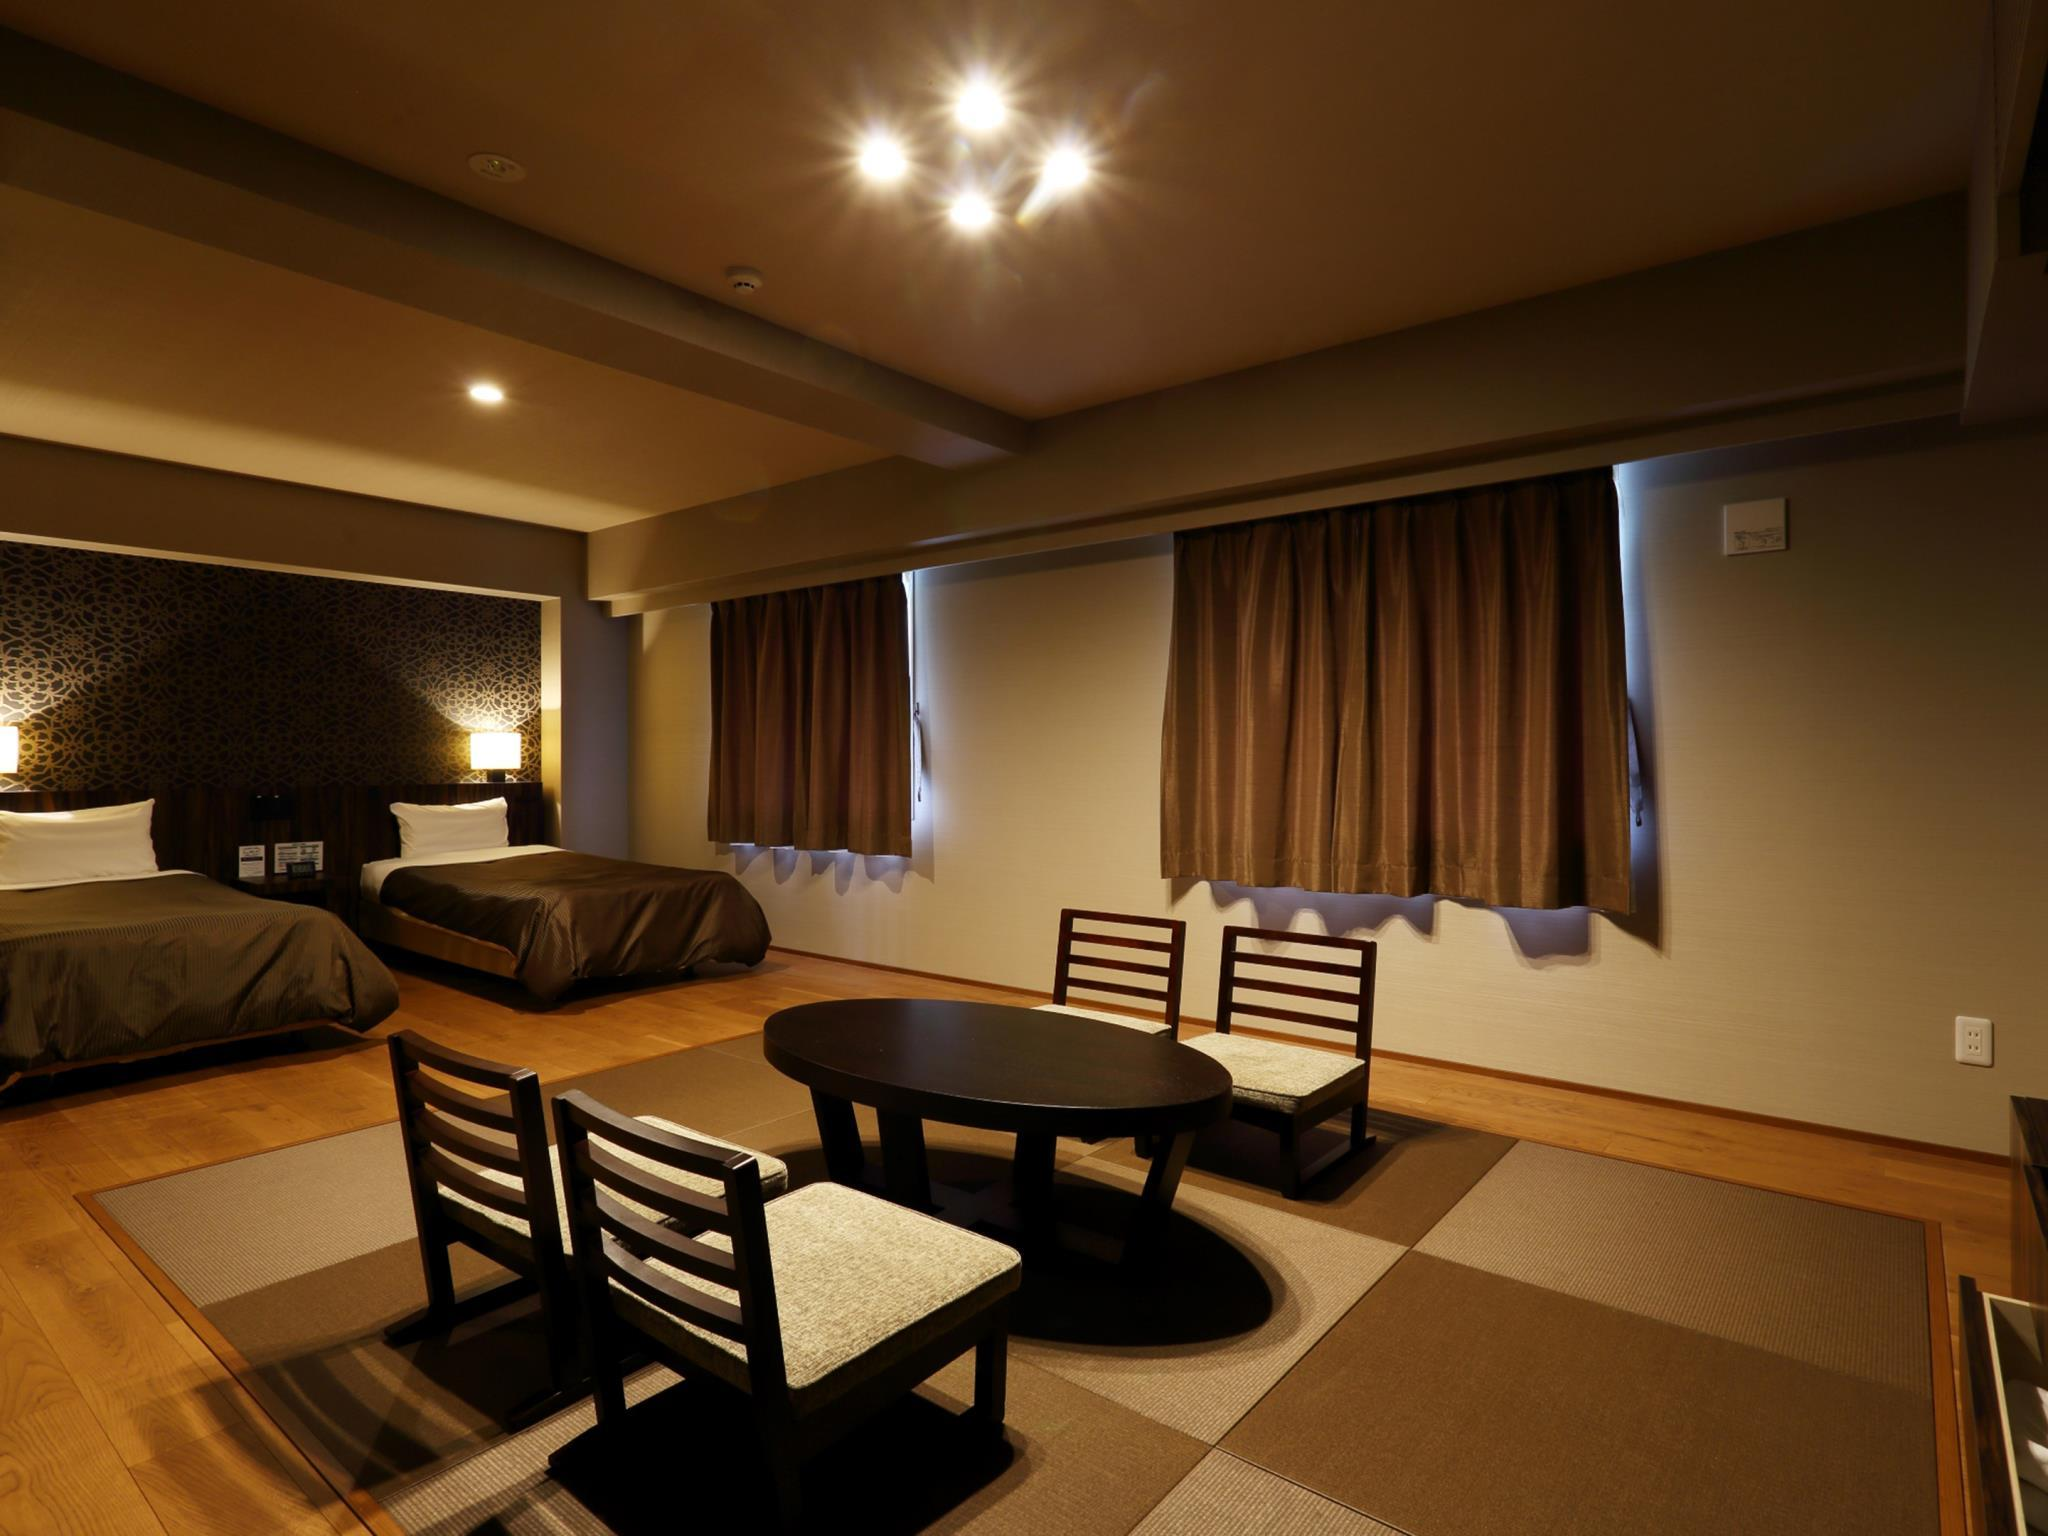 【全新裝修】和洋室客房(主樓) - 禁煙 (Main Building Japanese Western Style Room - Non-Smoking, Newly Renovated)